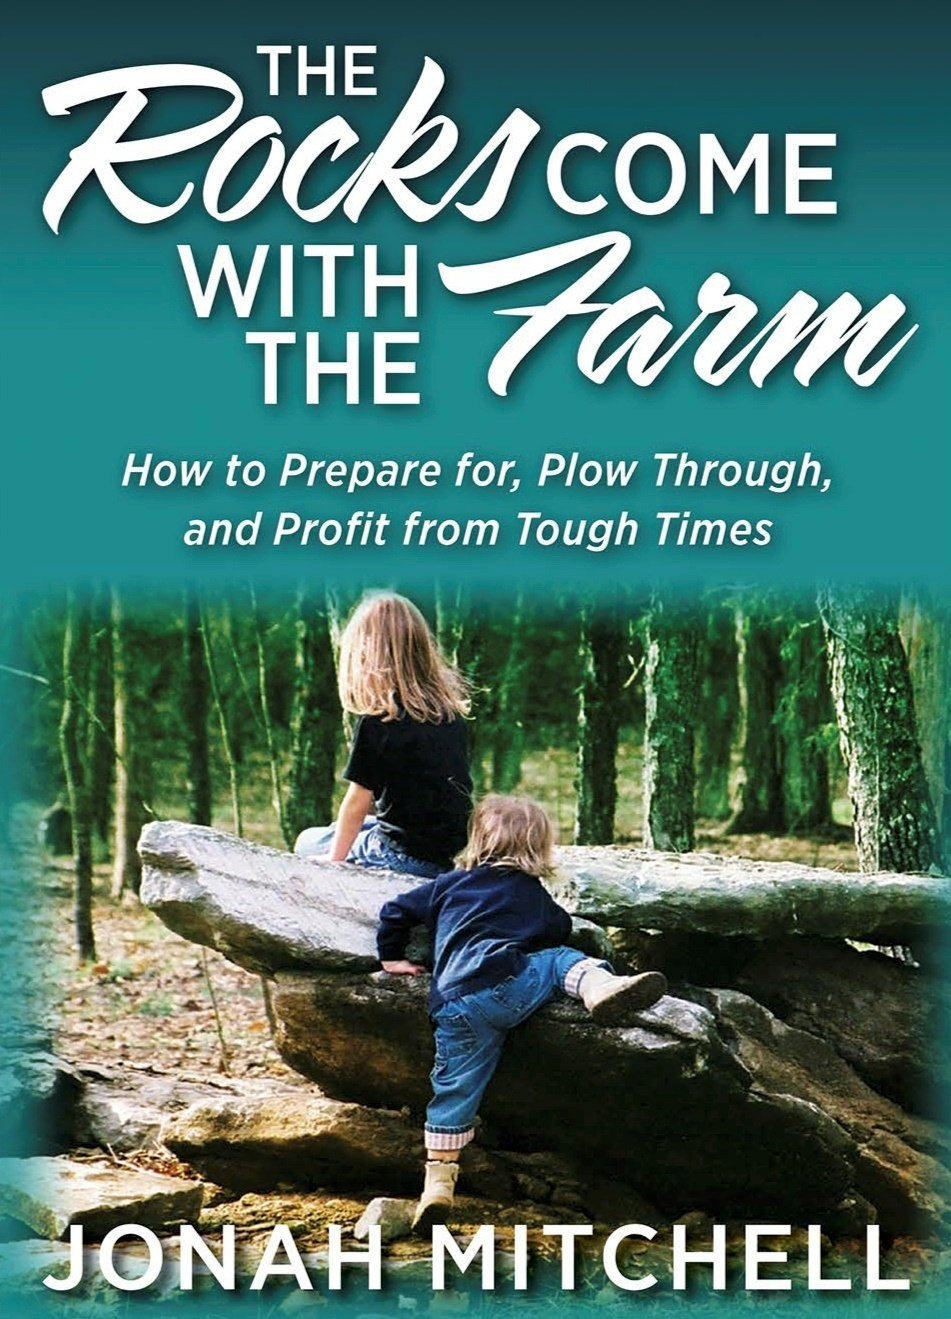 The Rocks Come With The Farm: How To Prepare For, Plow Through, And Profit From Tough Times pdf